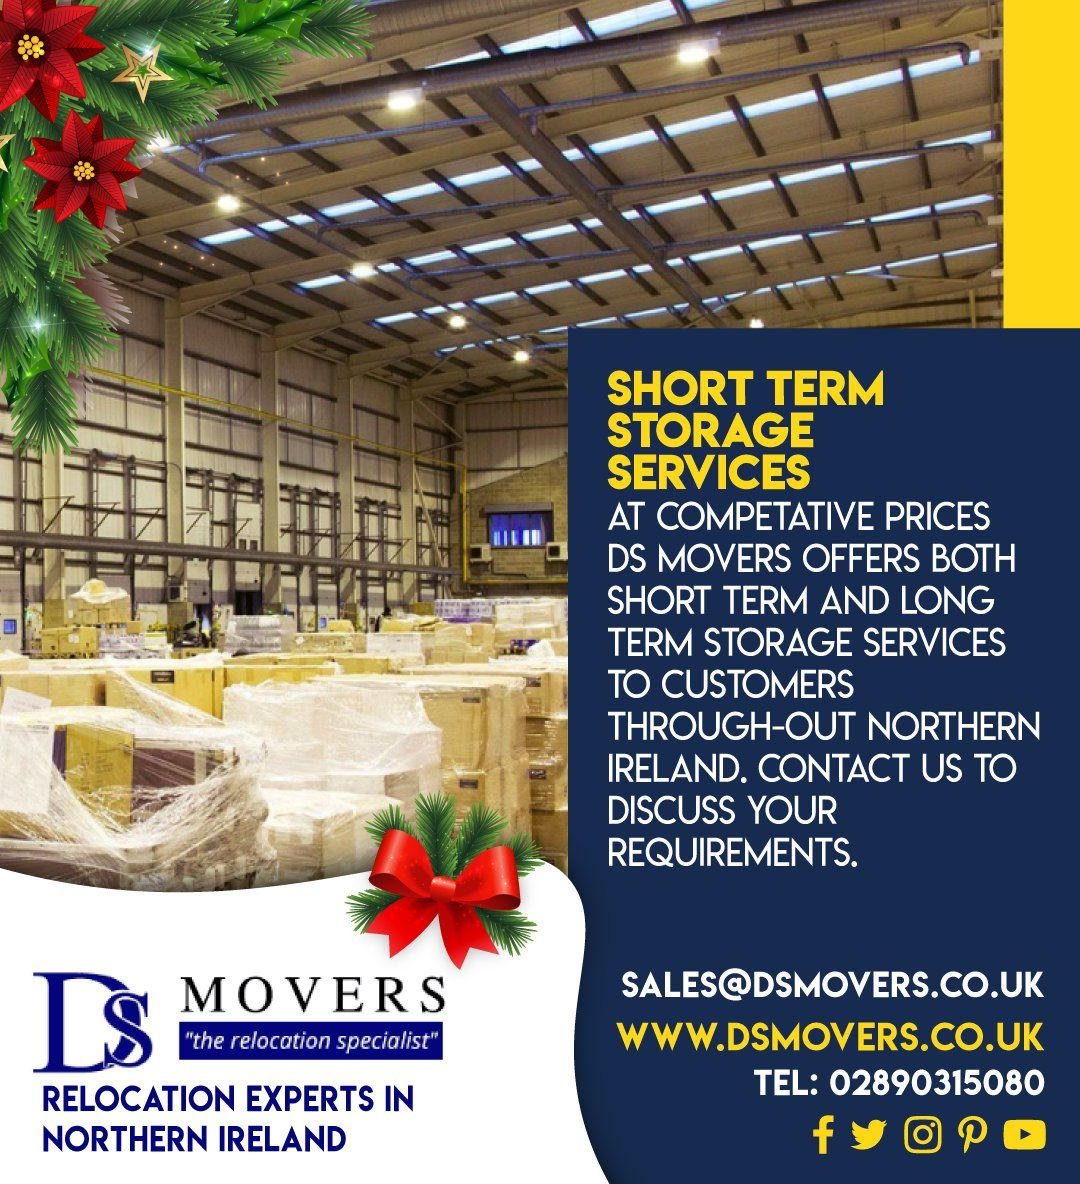 Ds Movers Are One Of The Industry S Leading Commercial Relocation